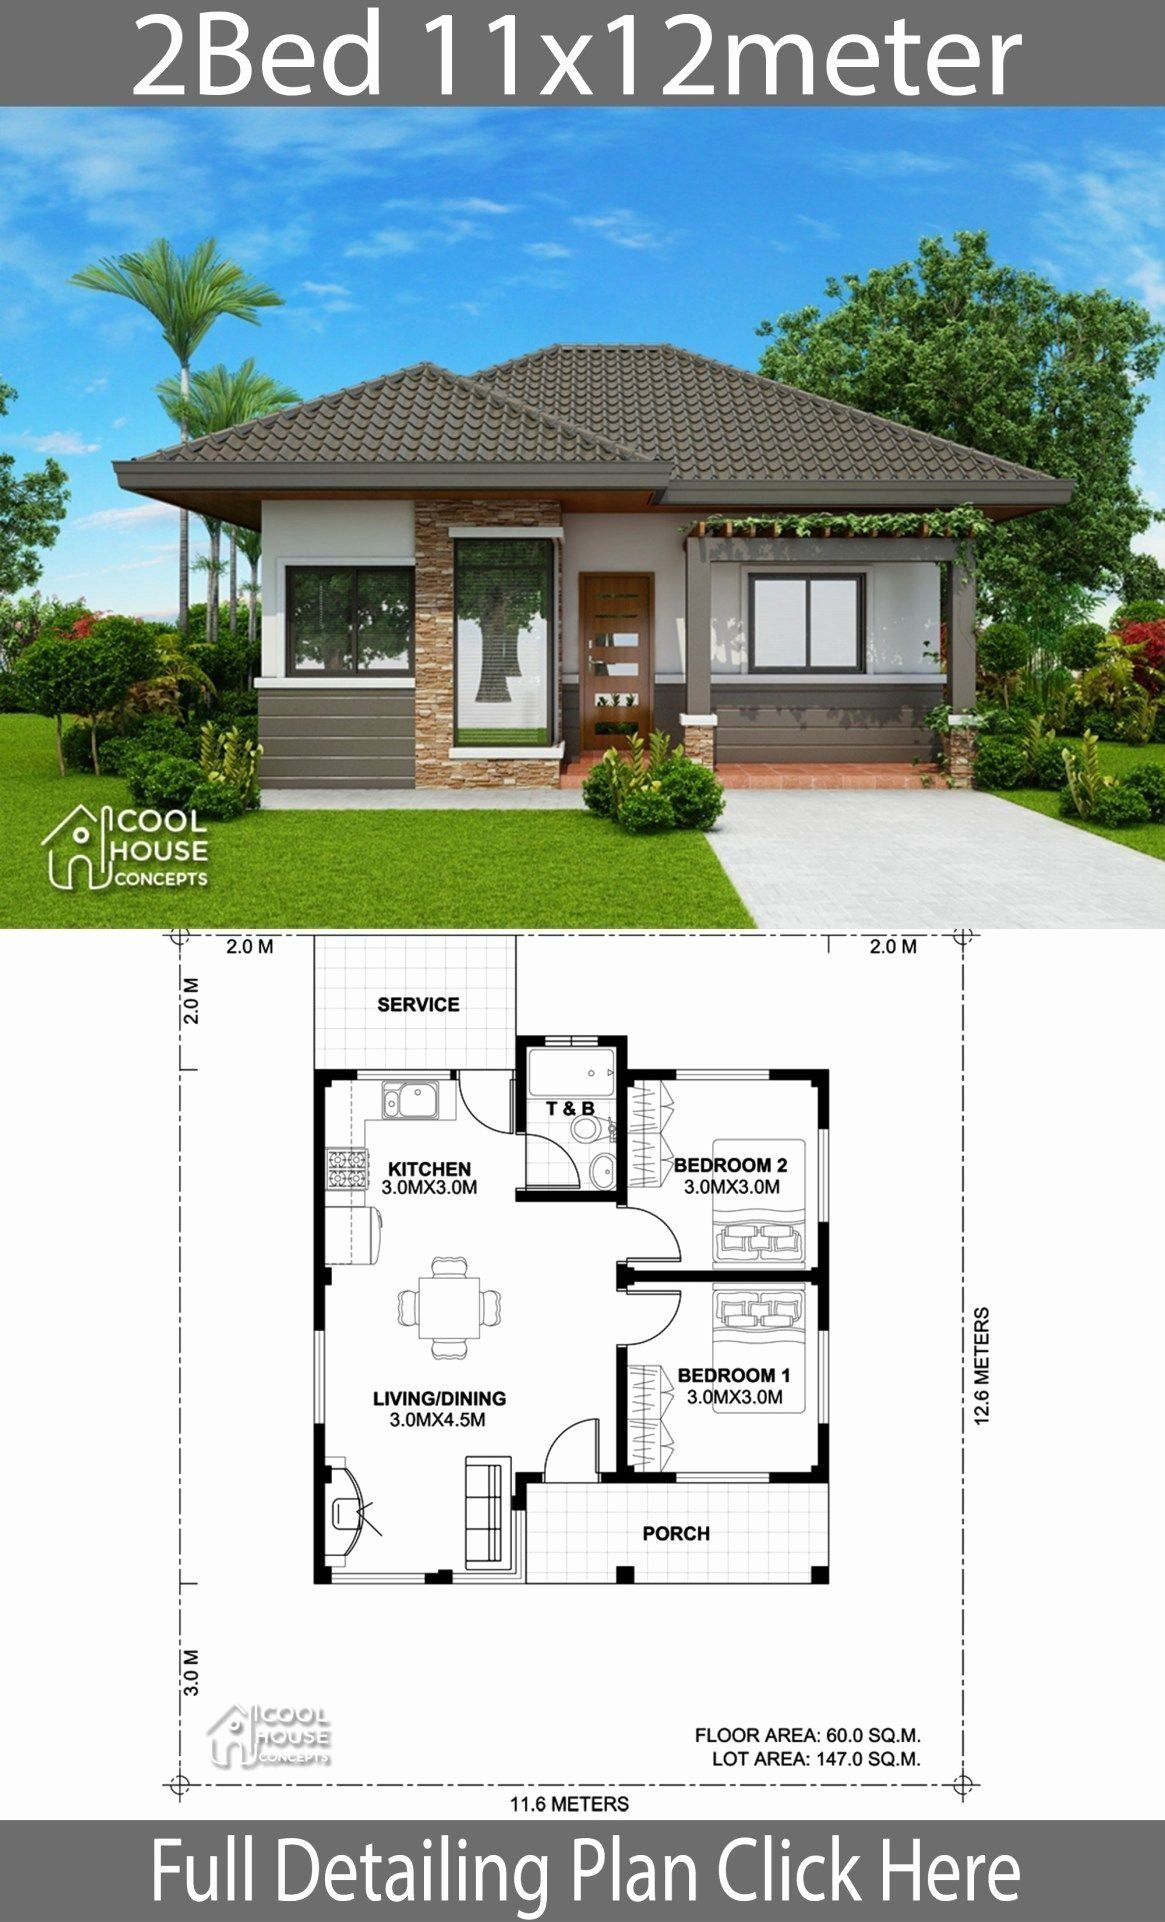 One Home Design Luxury Home Design Plan 11x12m With 2 Bedrooms Home Design With House Plan Gallery Bungalow House Plans House Design